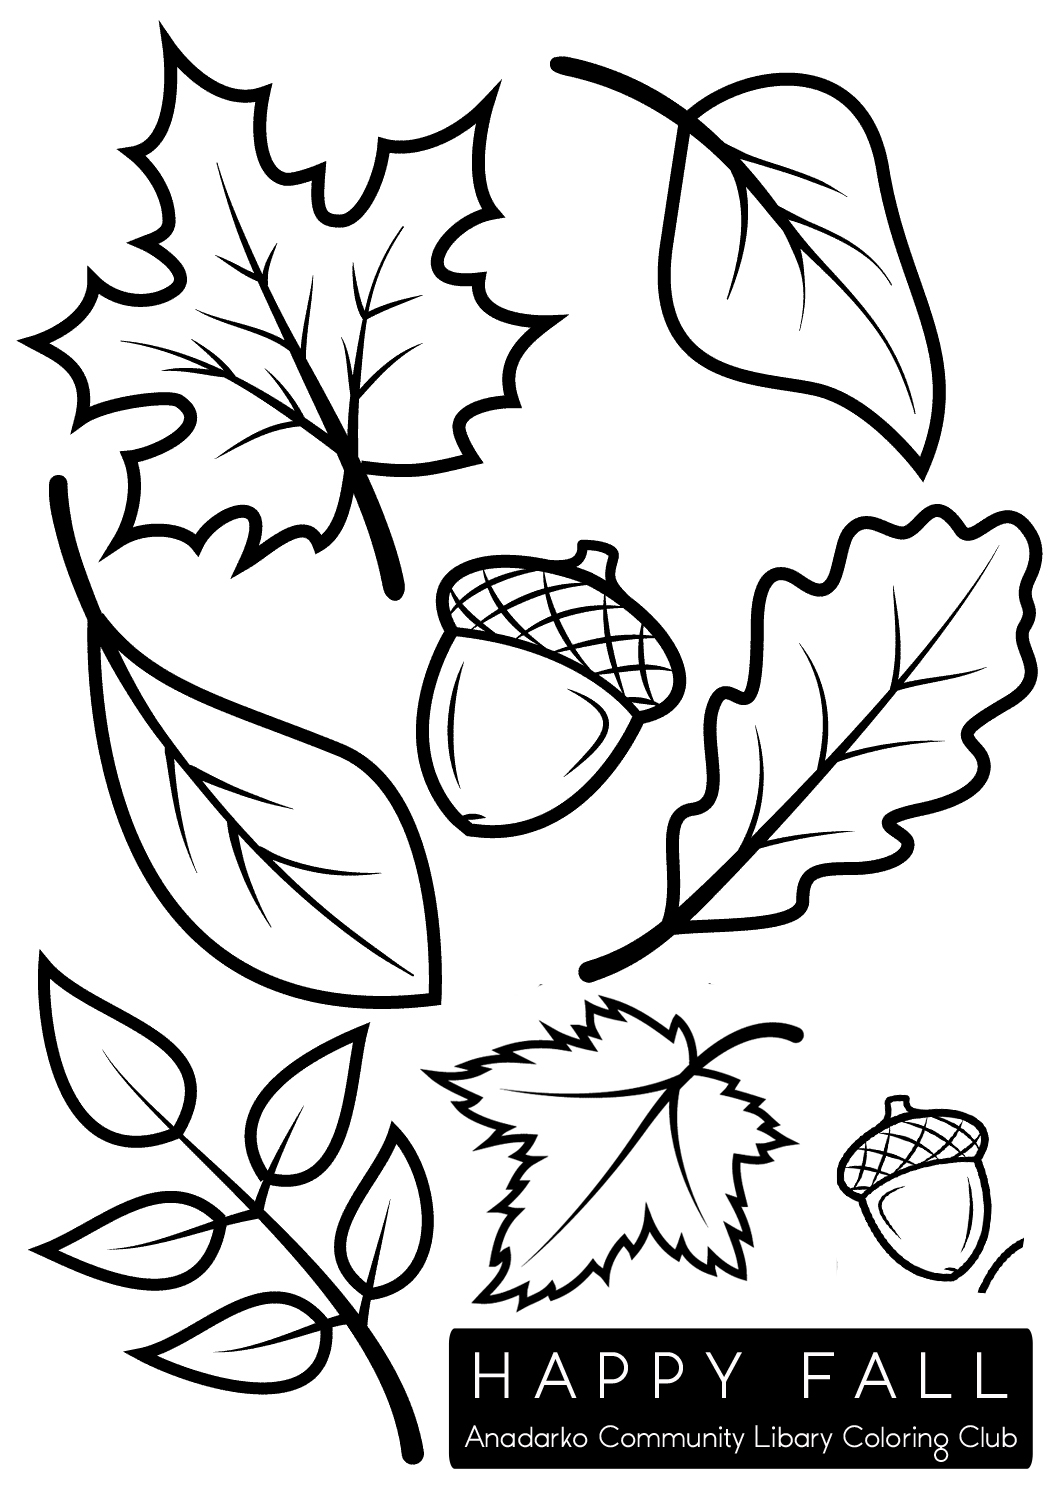 fall leaves coloring sheets autumn leaf to the ground coloring page download print coloring fall leaves sheets